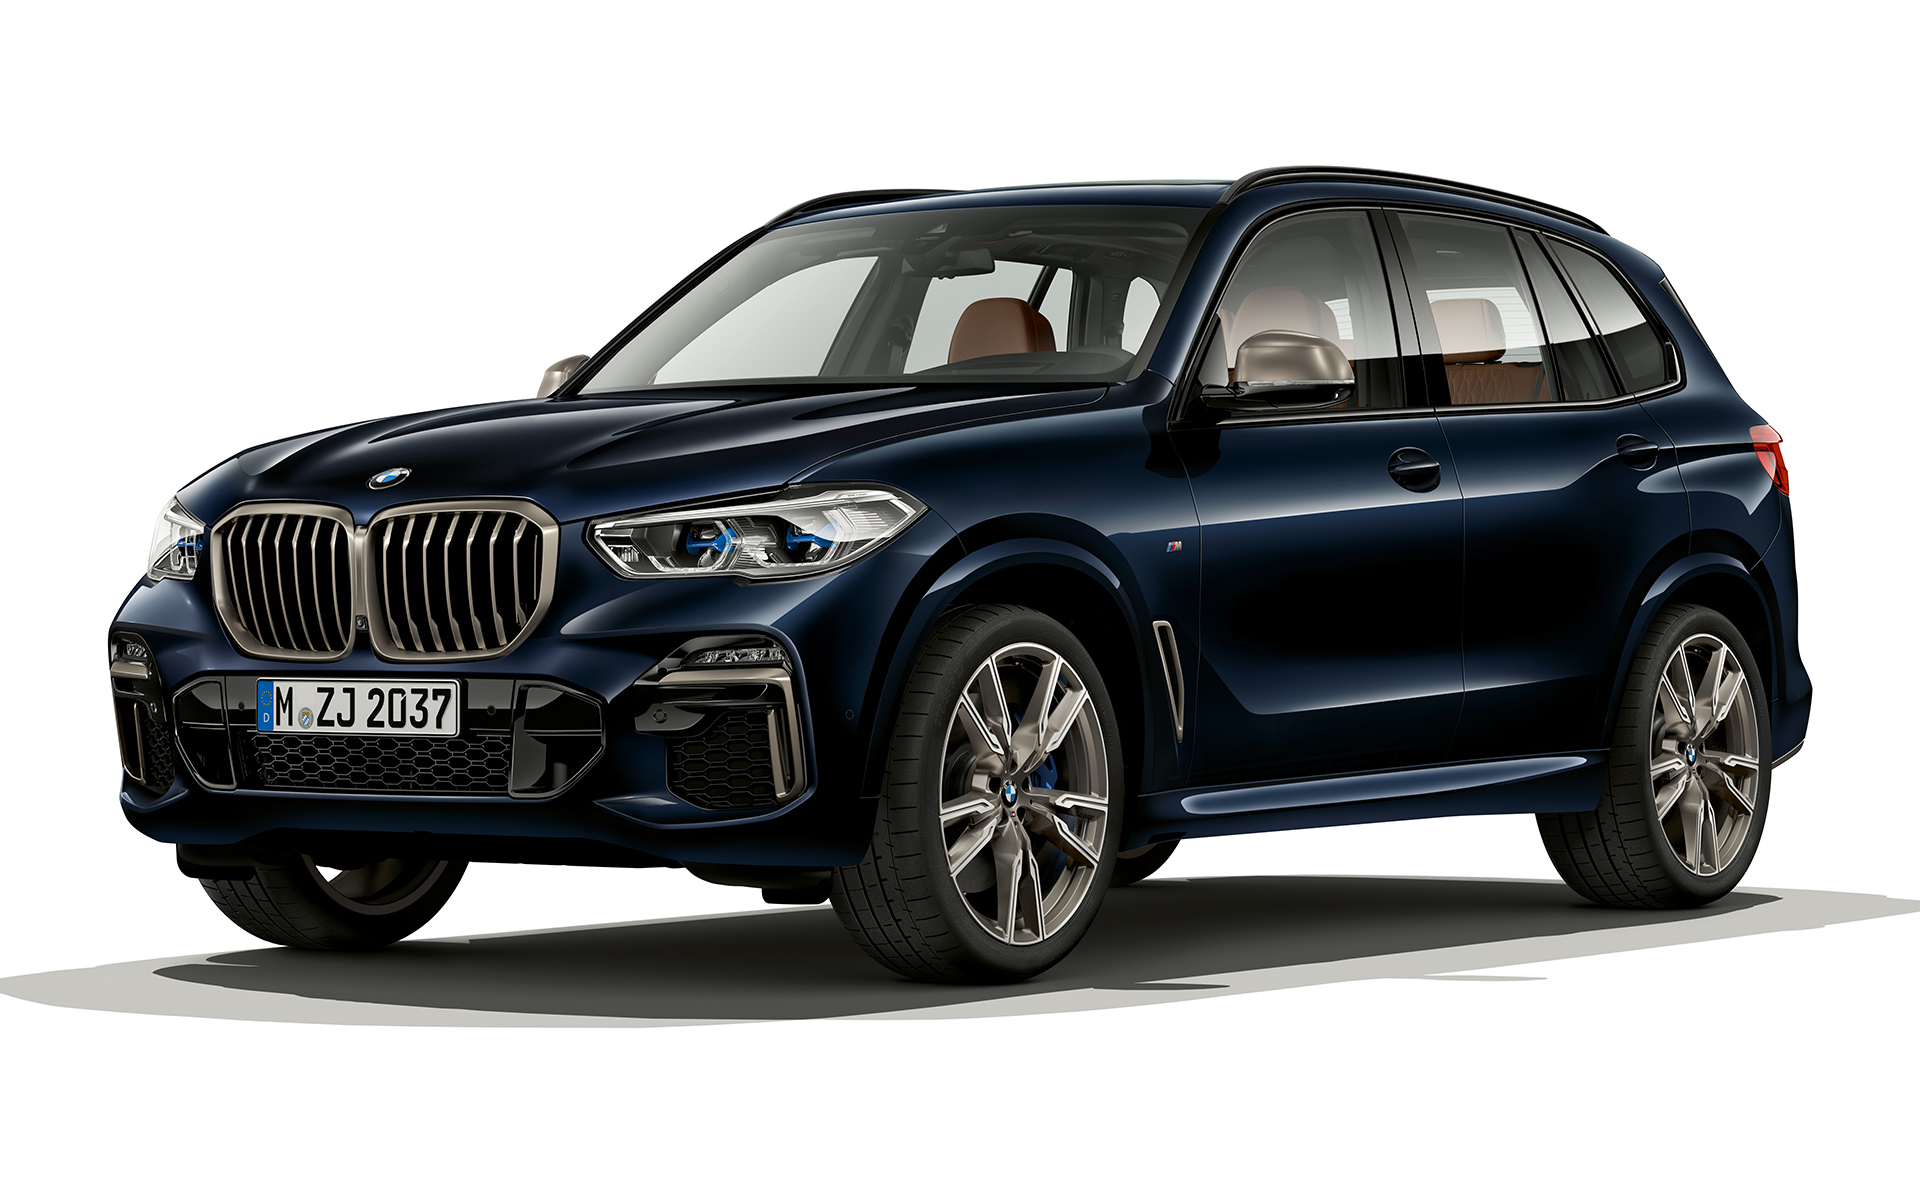 Night-time shot of the front of the BMW X5 M50d